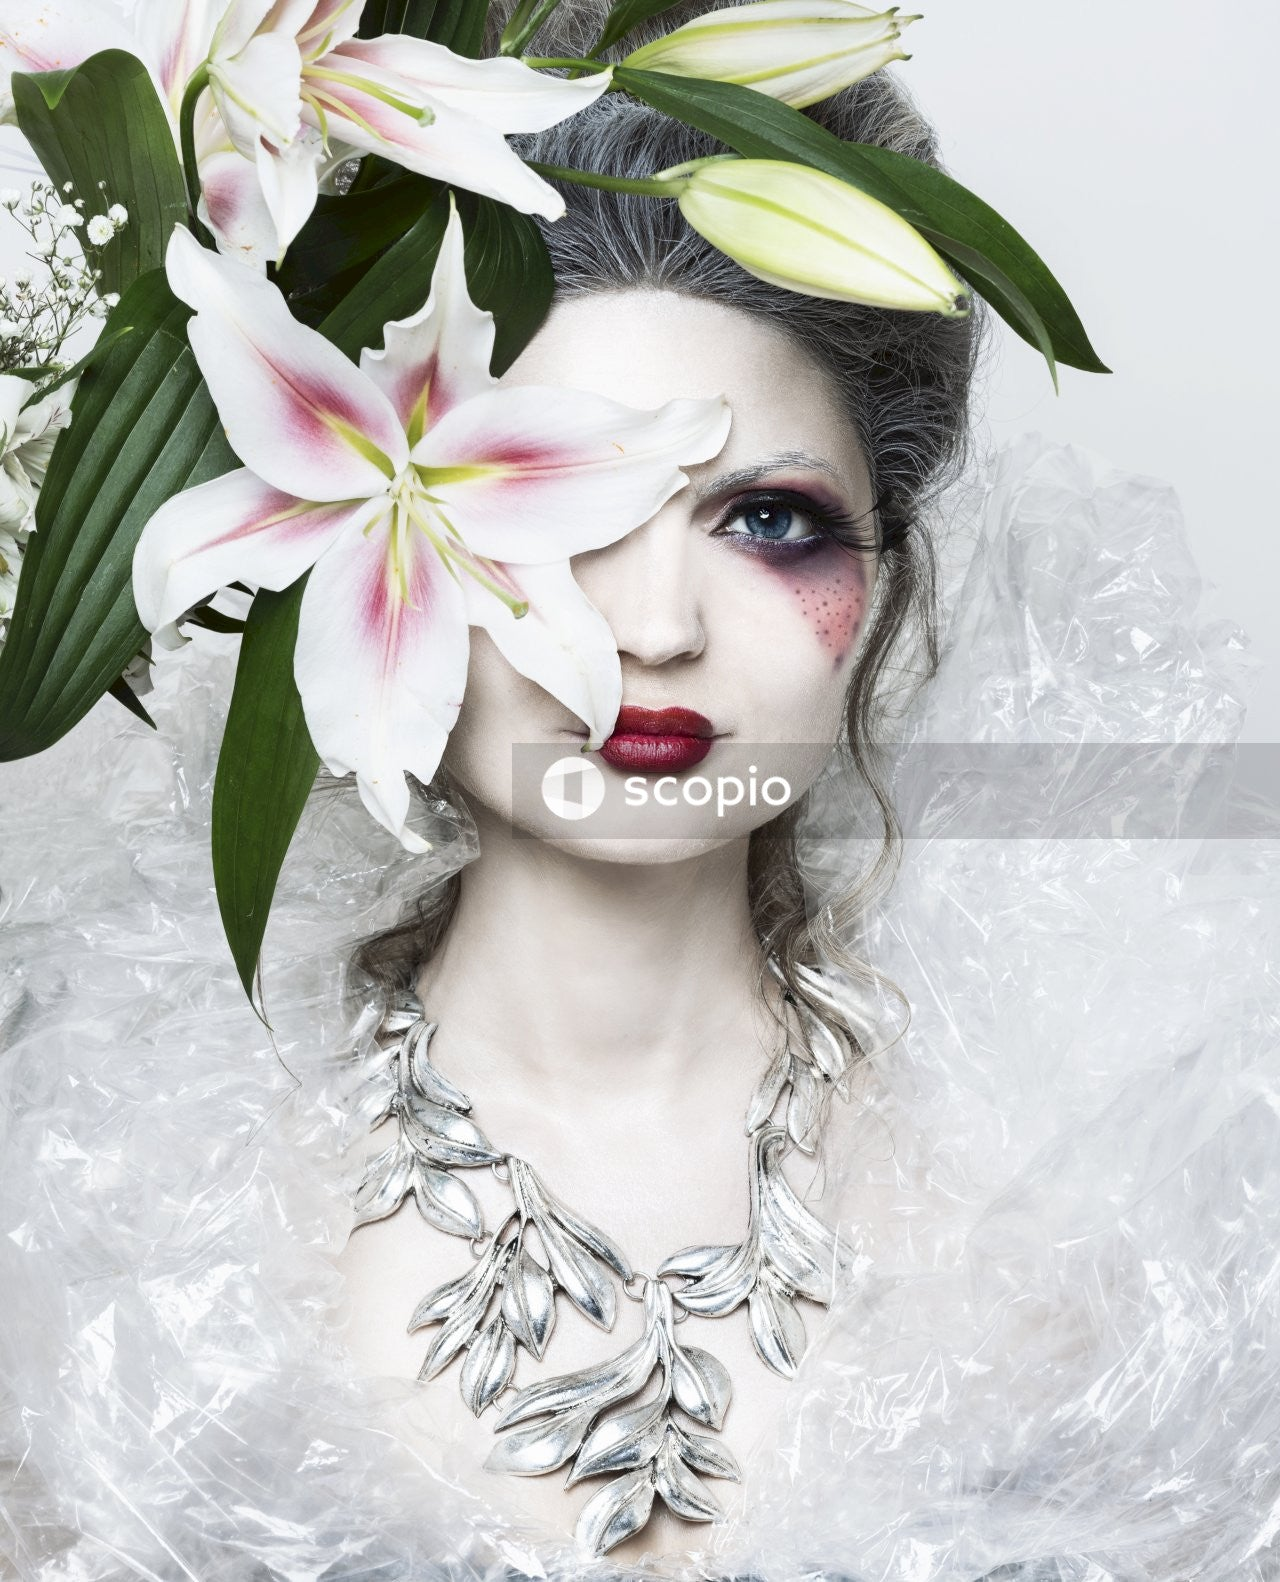 Female with makeup and flowers